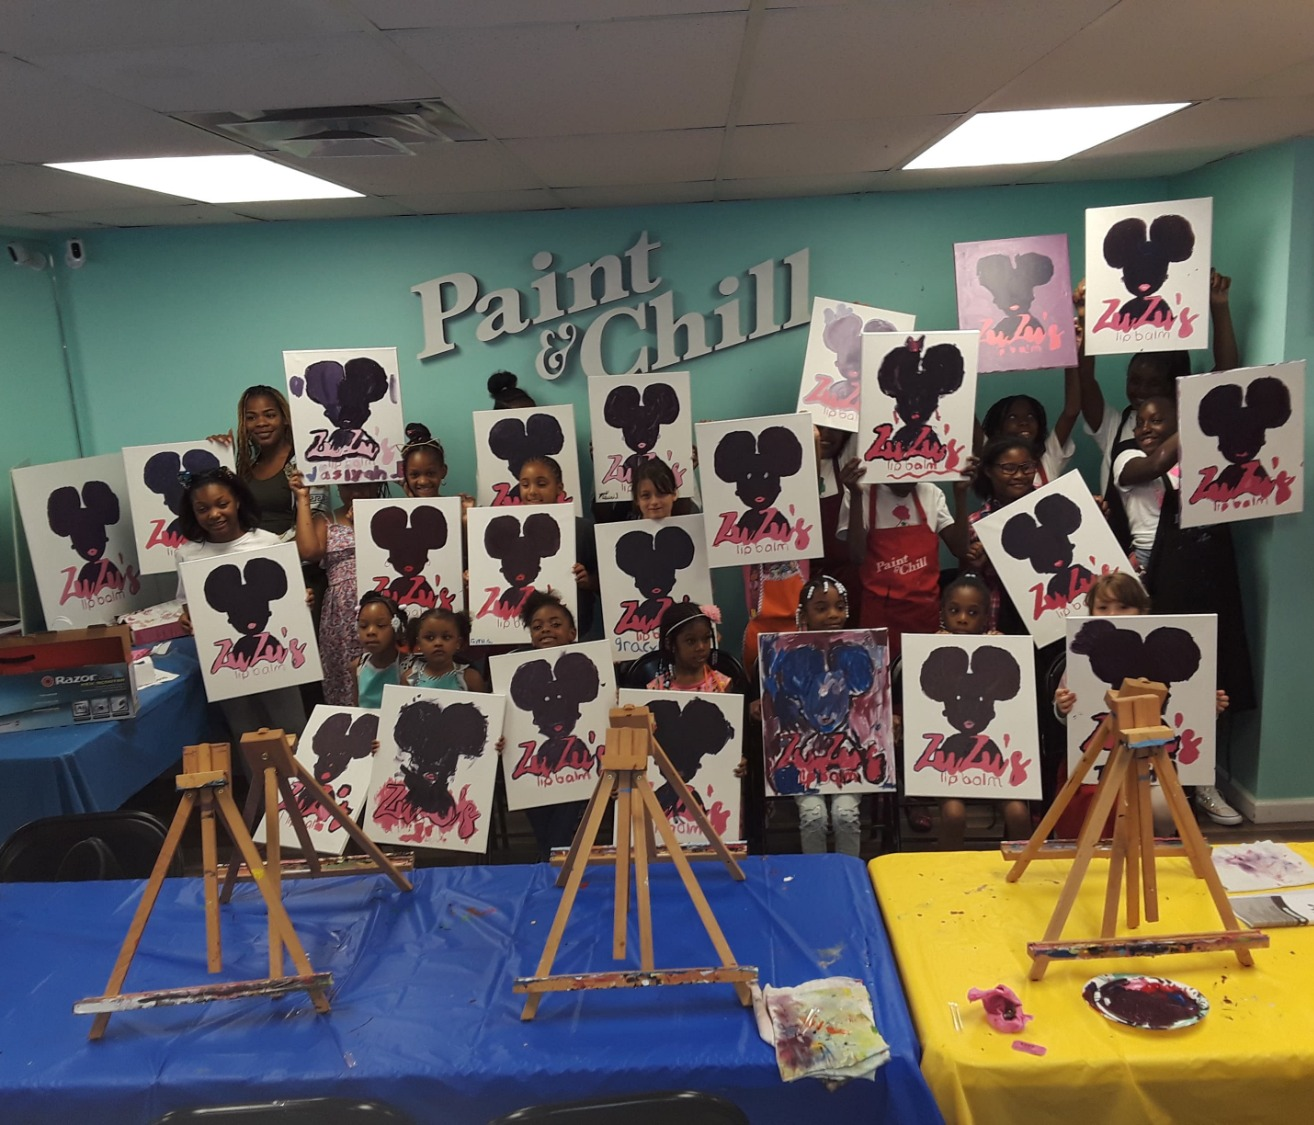 Sip & Paint Event: Group Photo